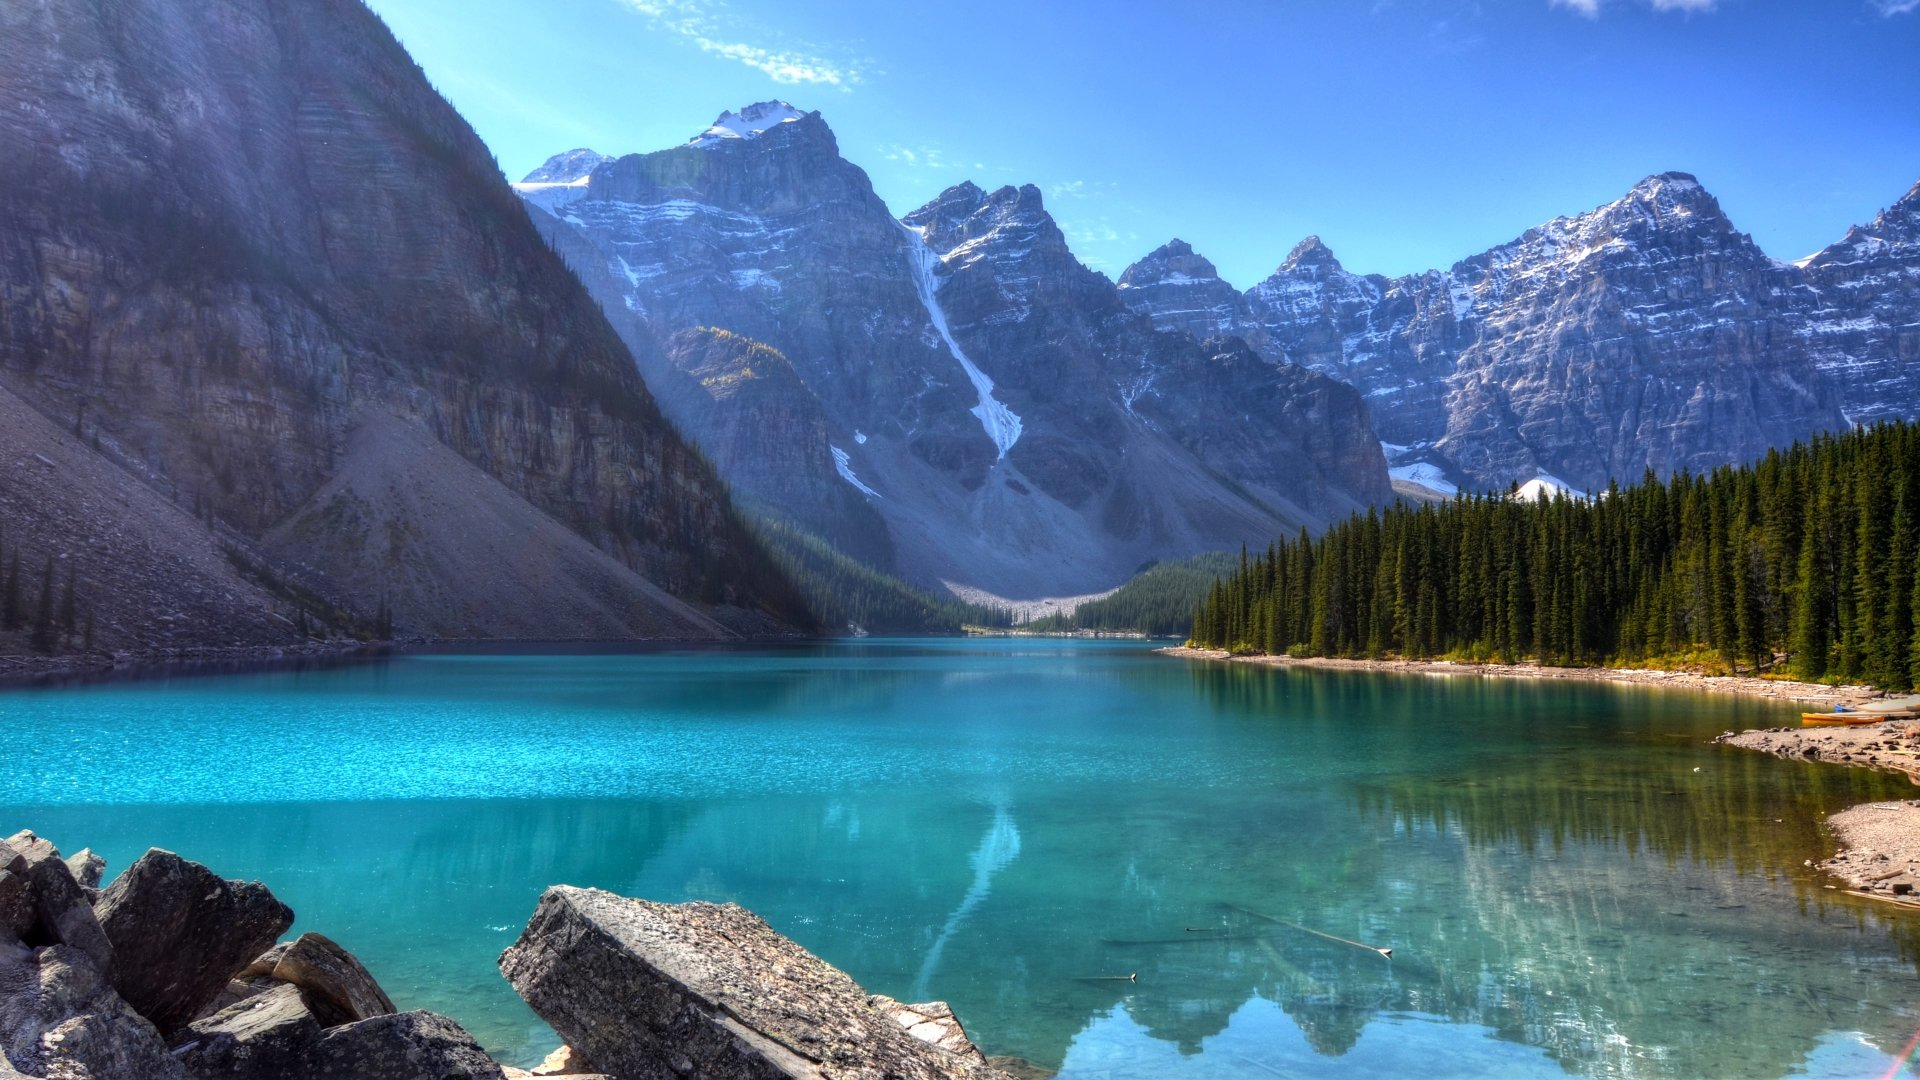 Earth - Moraine Lake  Banff National Park Alberta Canada Canadian Rockies Lake Mountain Reflection Cliff Wallpaper